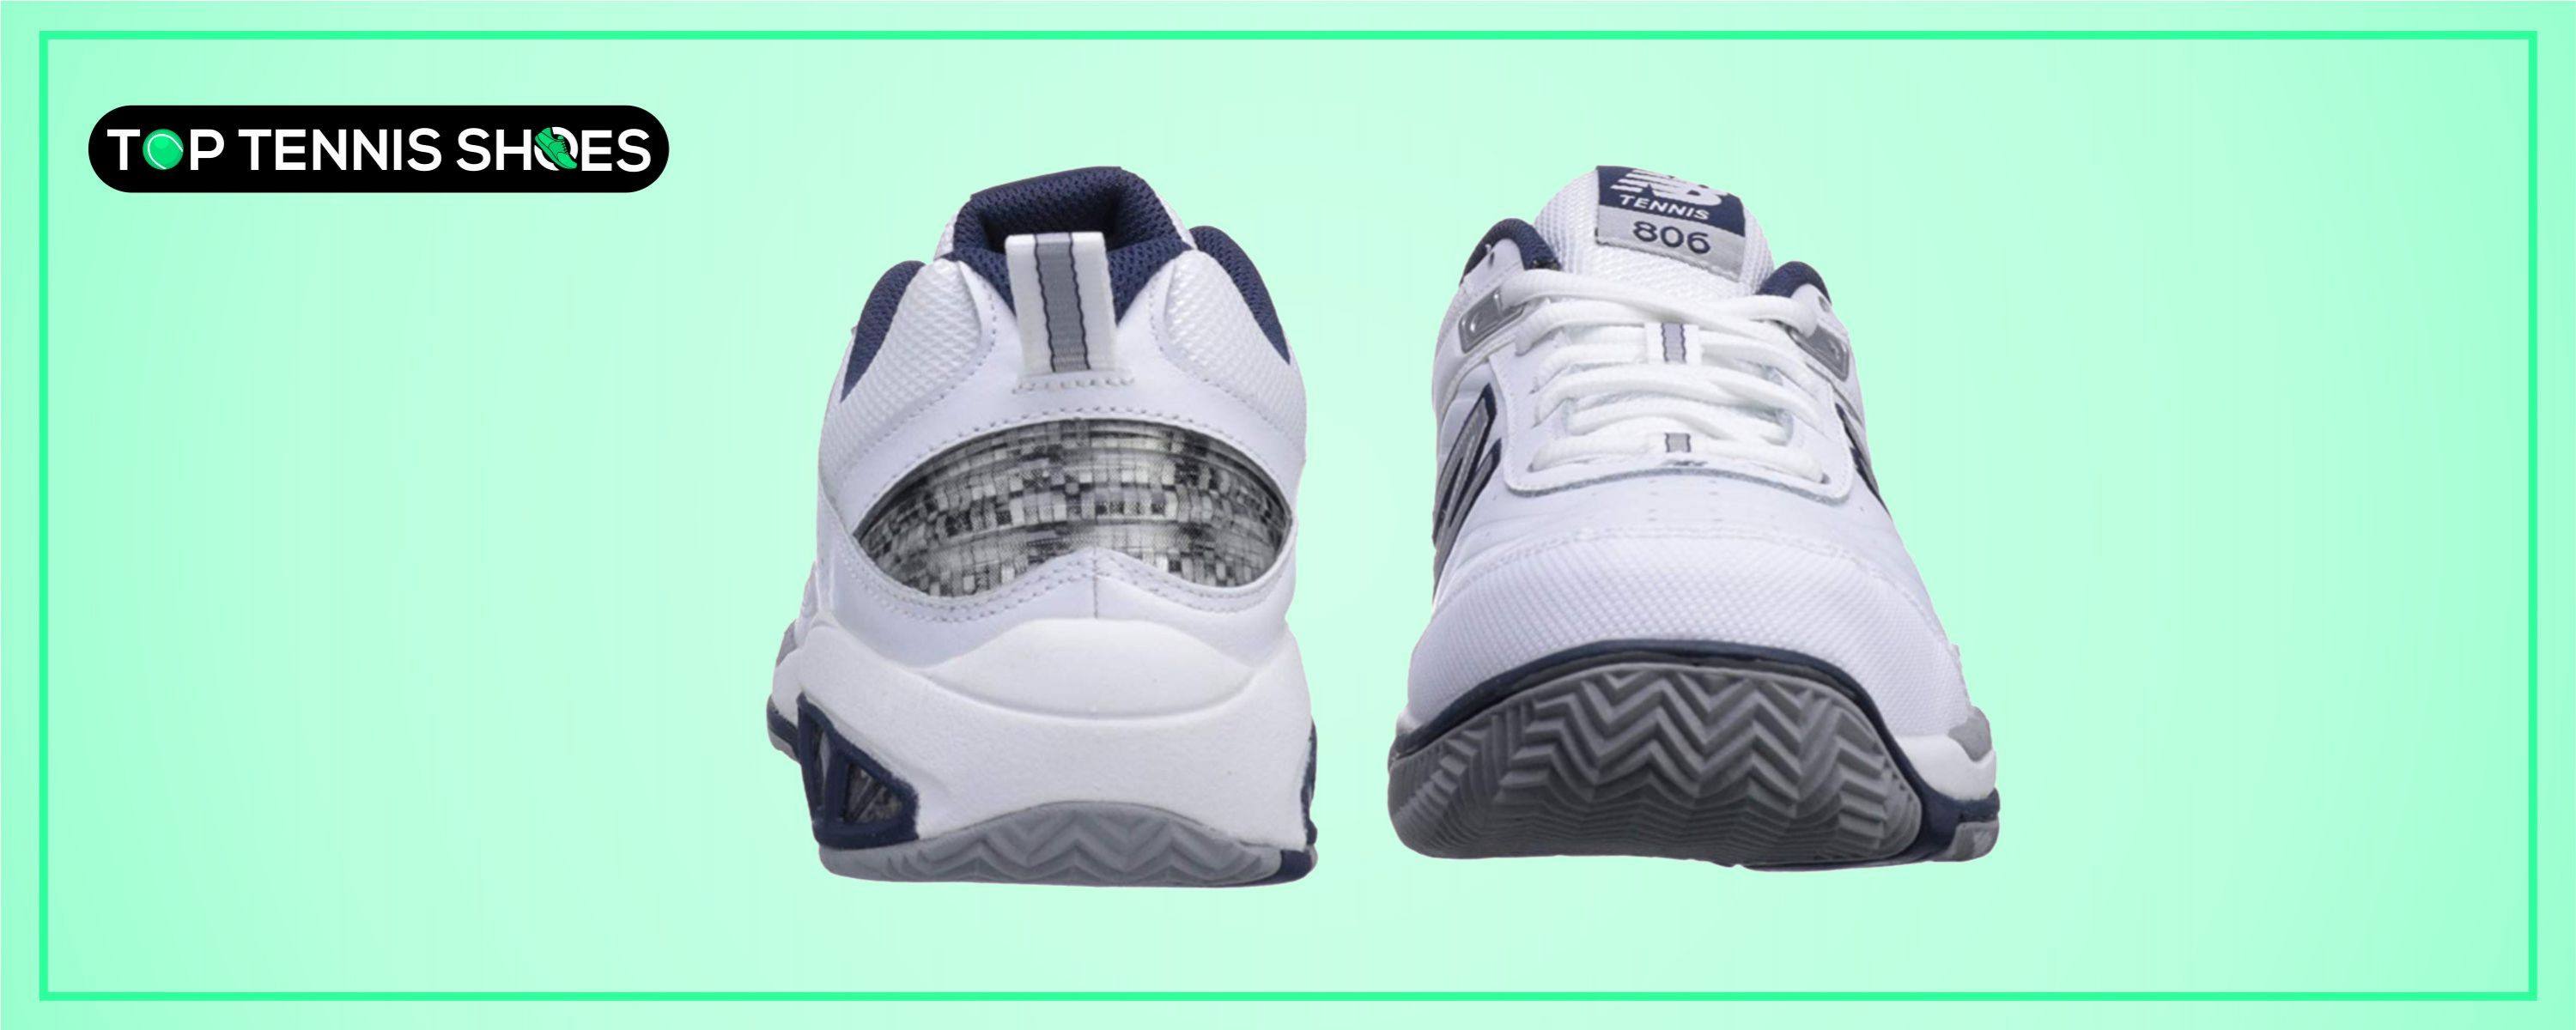 best tennis shoes brand reviews